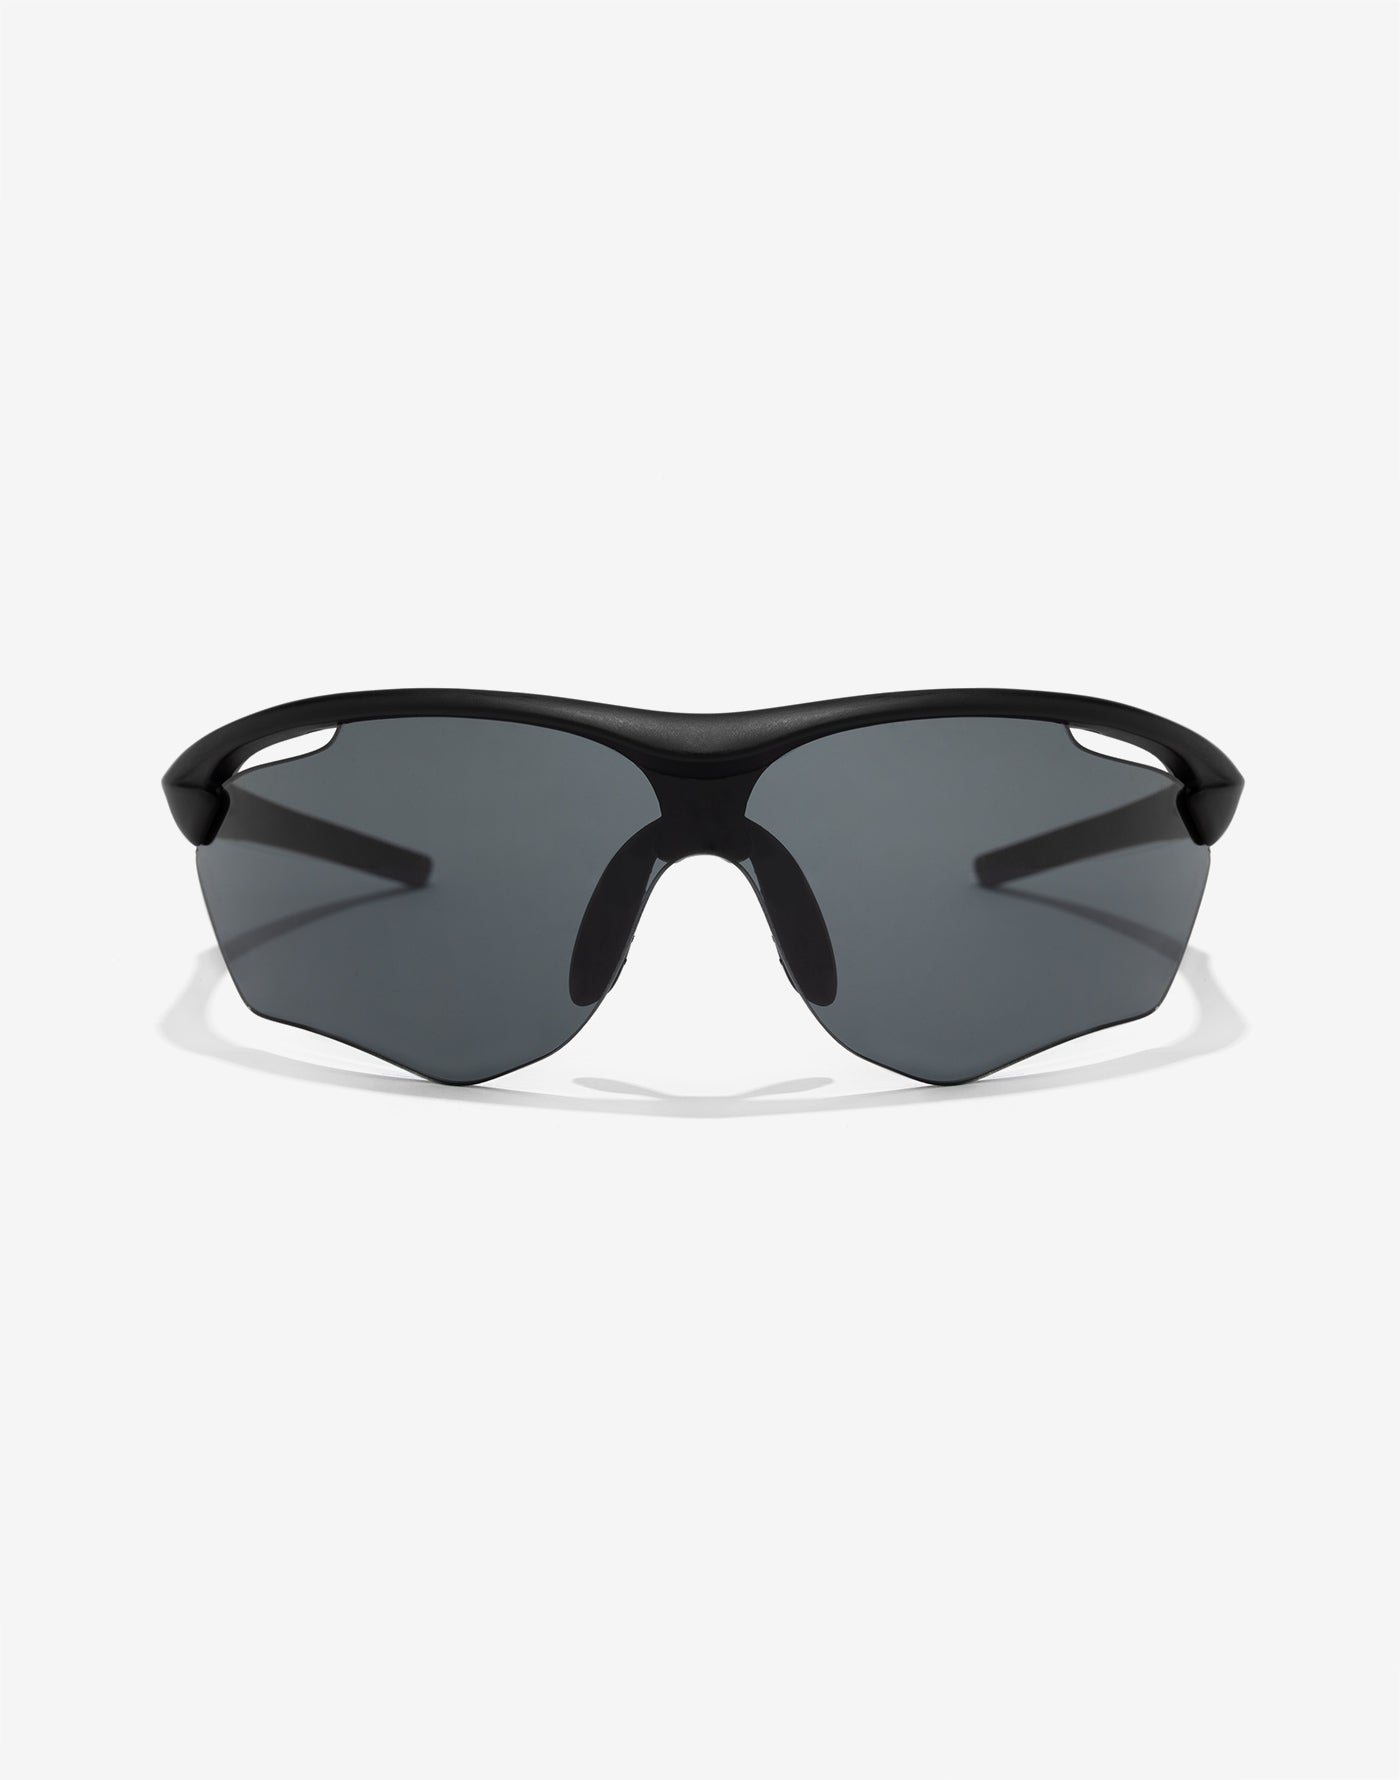 350131dbad Gafas de sol deportivas hombre | Black Training | Hawkers Group